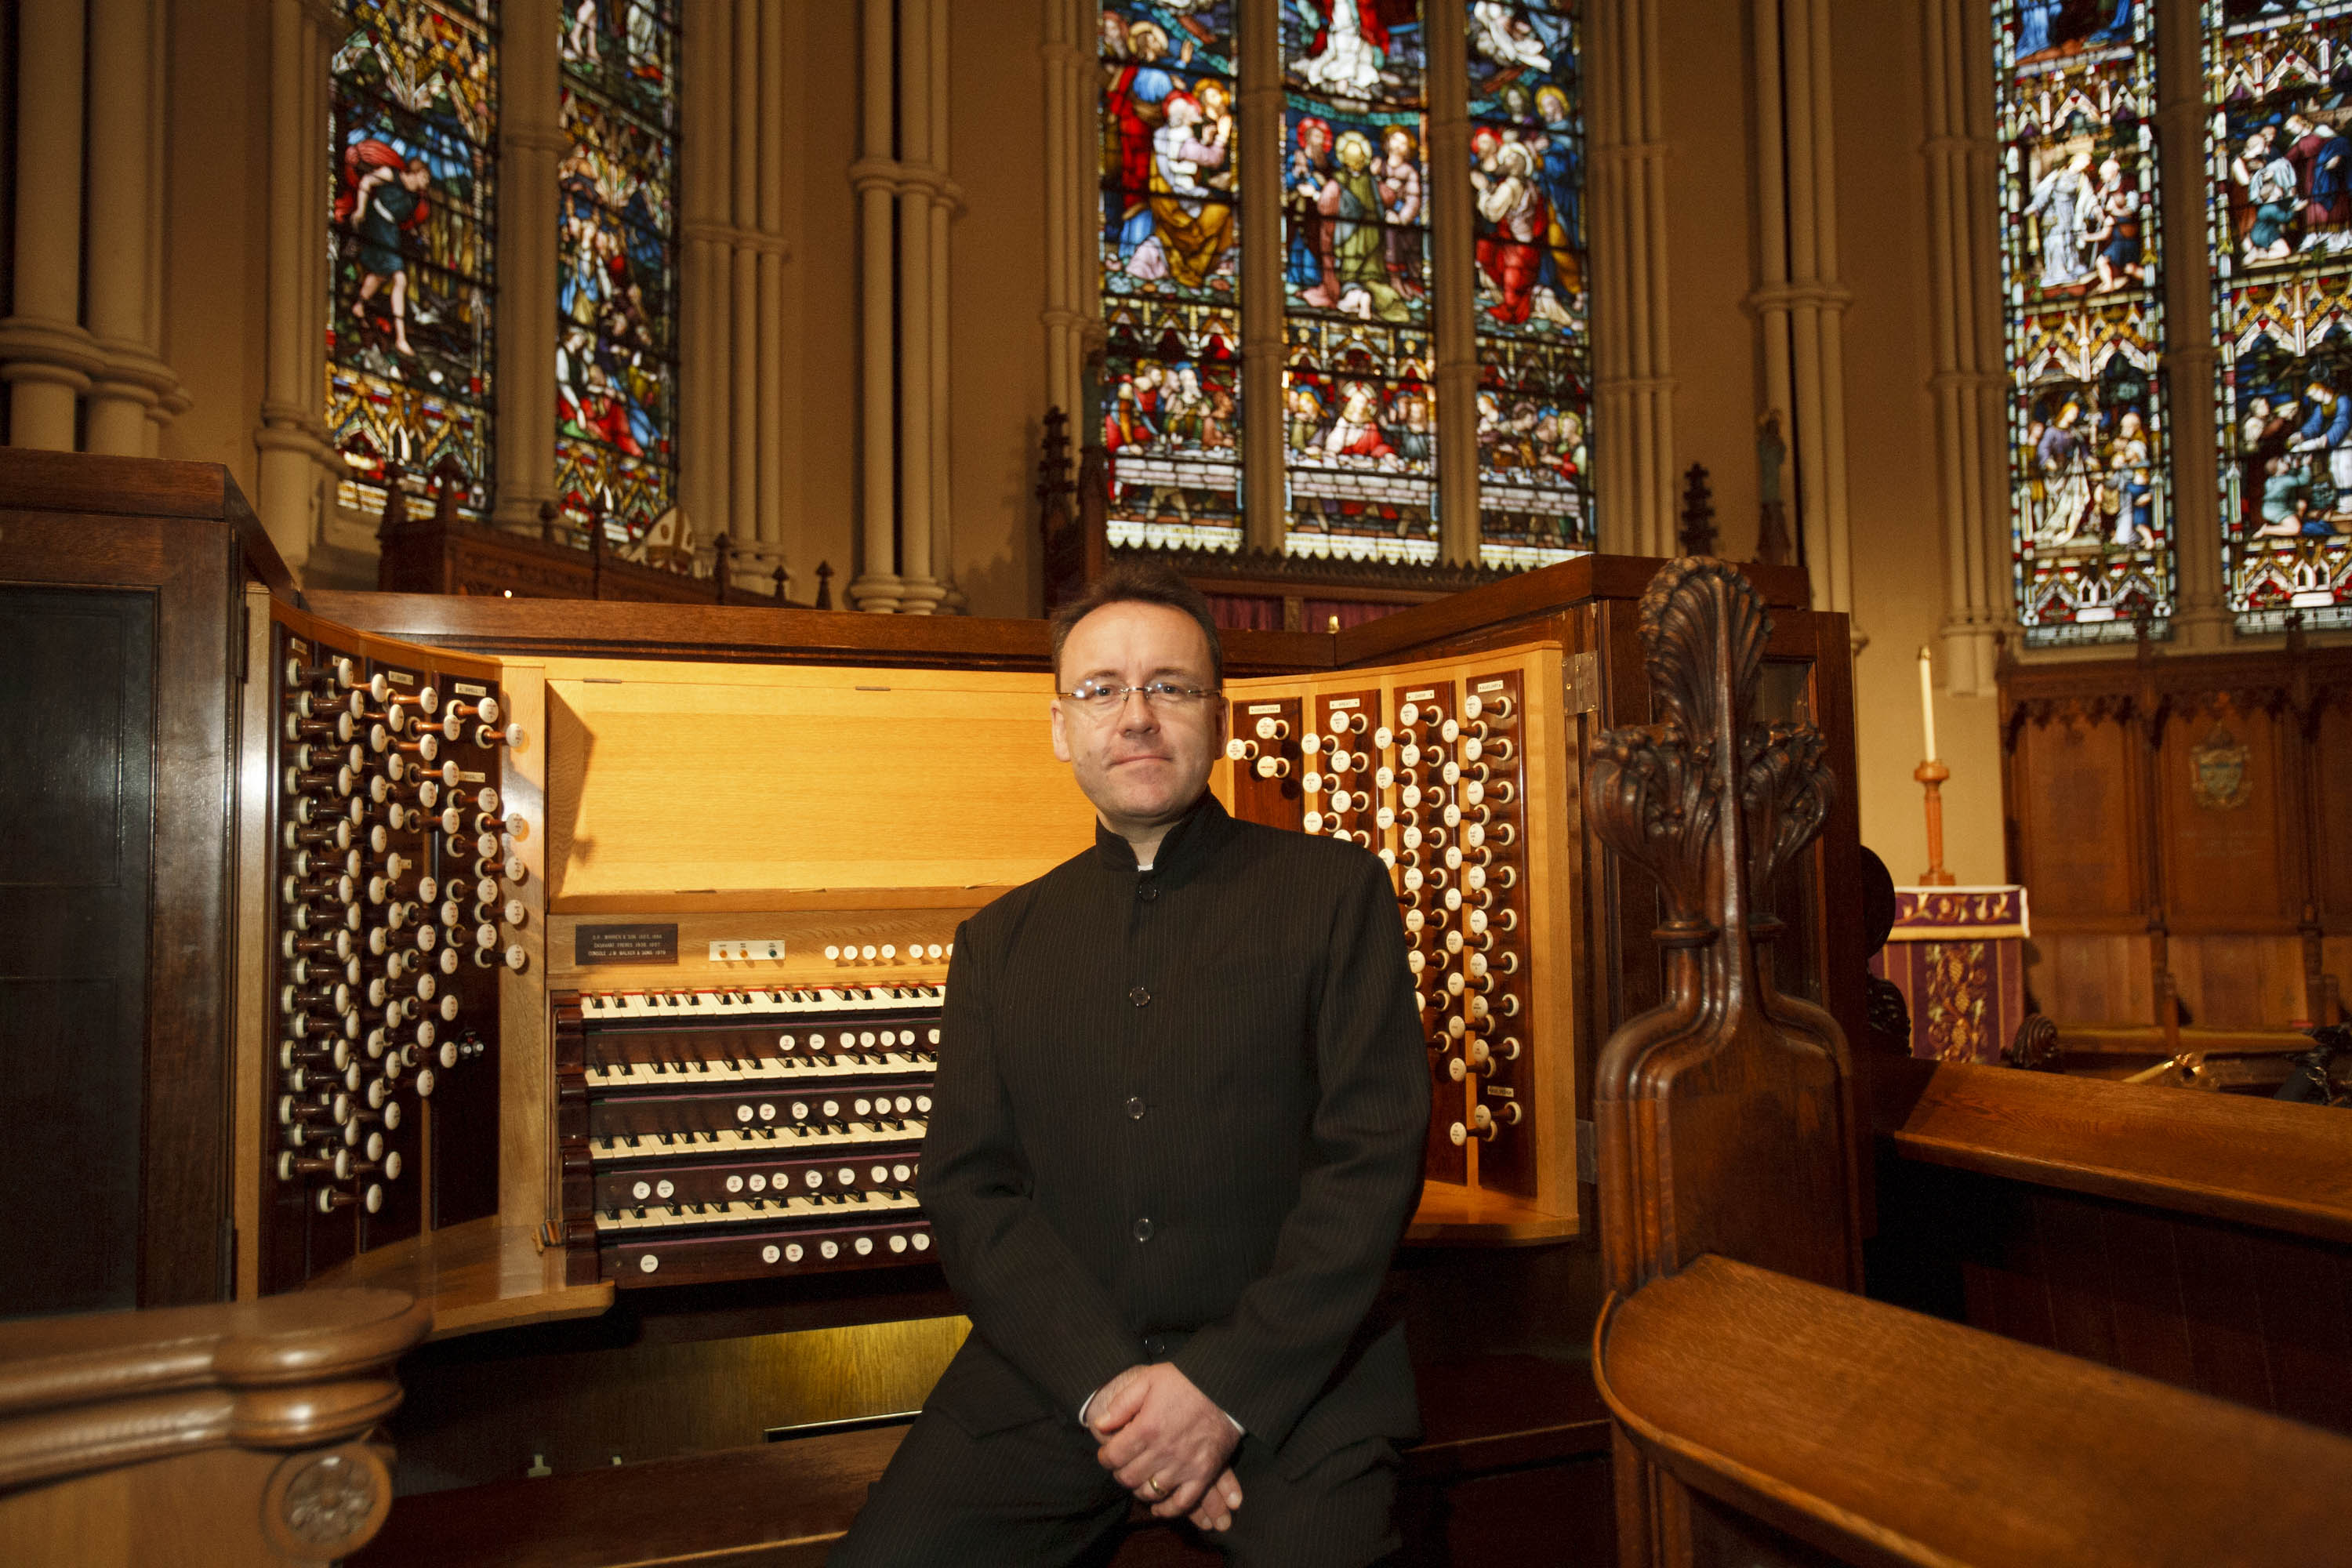 Organist & composer David Briggs. Image courtesy St. James Cathedral.